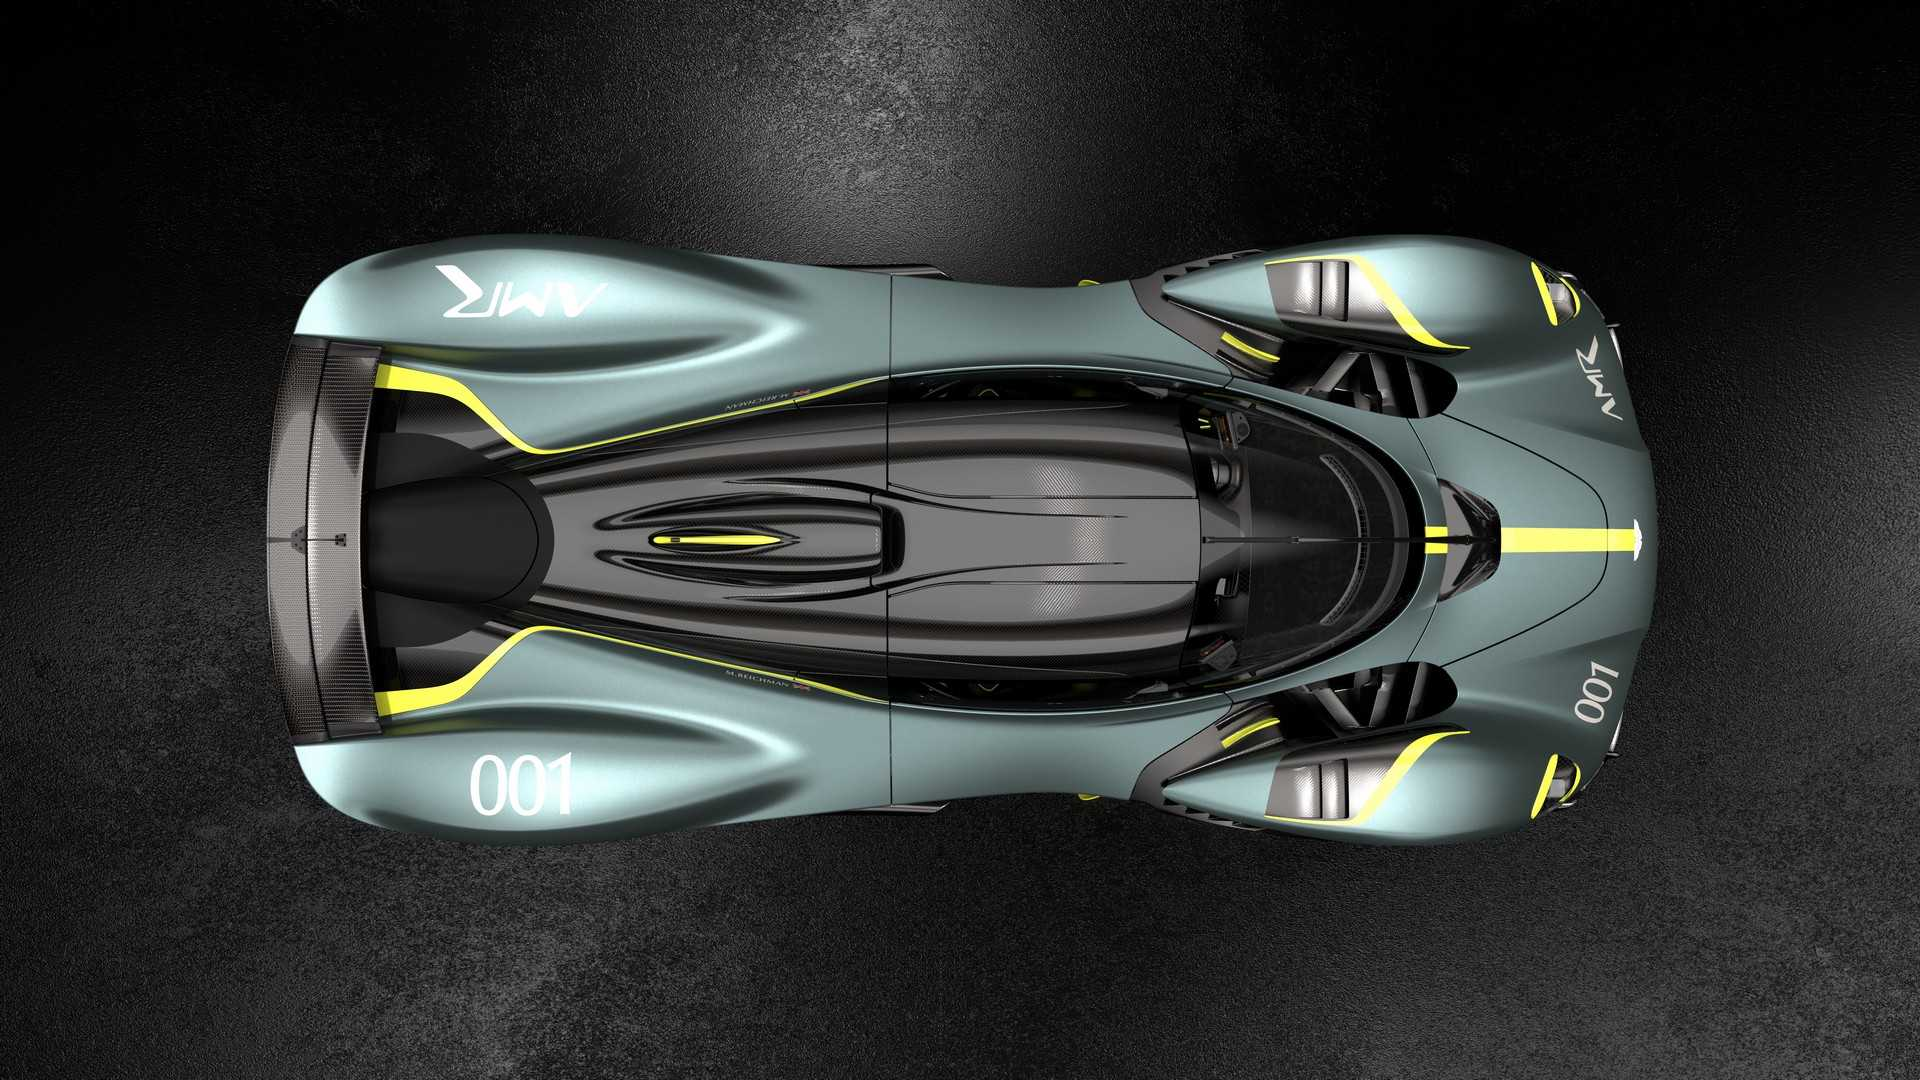 Watch Top Gear Play With The Aston Martin Valkyrie Configurator